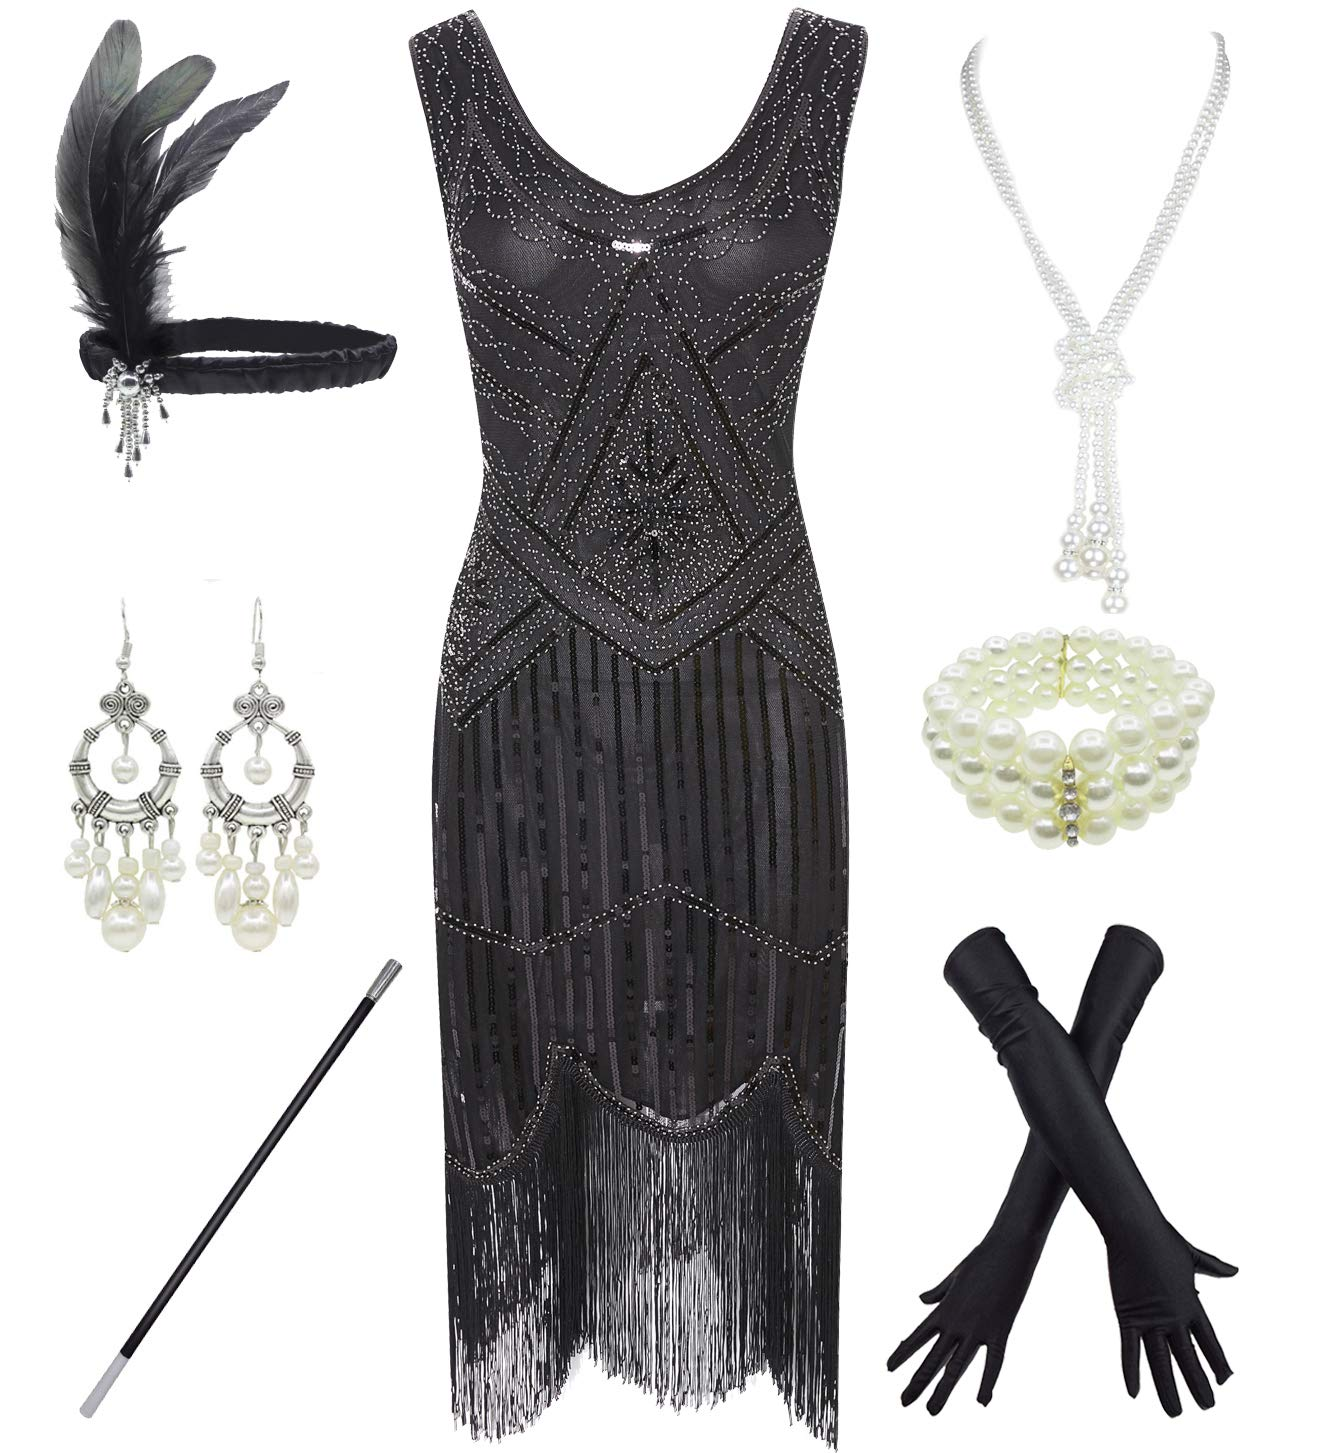 Party Dresses - 1920s Gatsby Sequin Fringed Paisley Flapper Dress With 20s Accessories Set